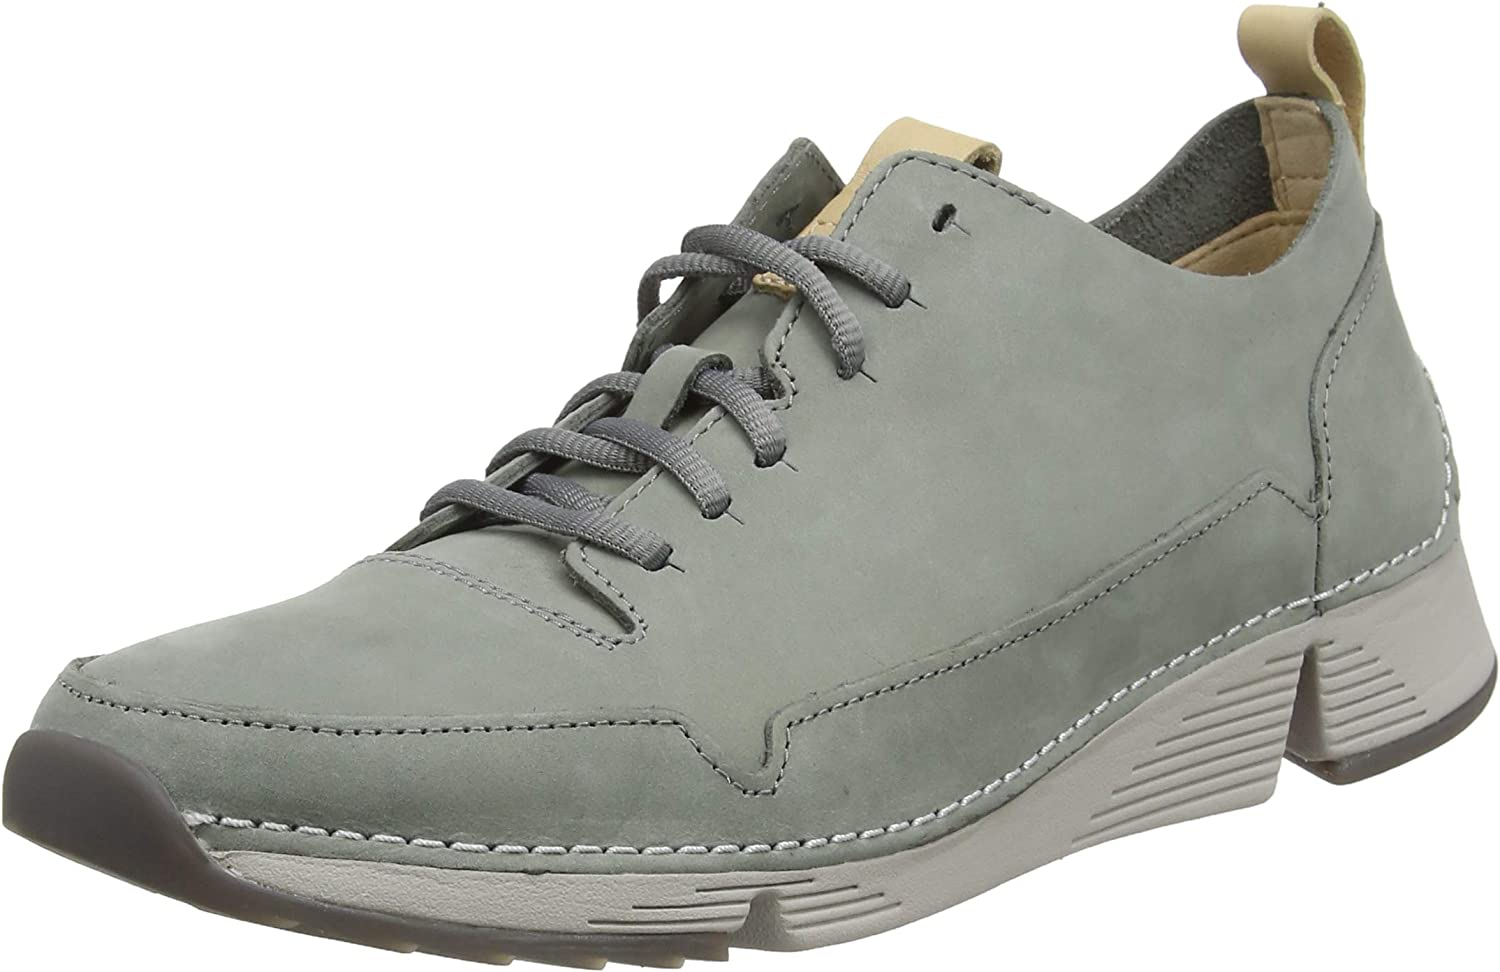 Clarks Women's Tri Spark. Low-Top Sneakers